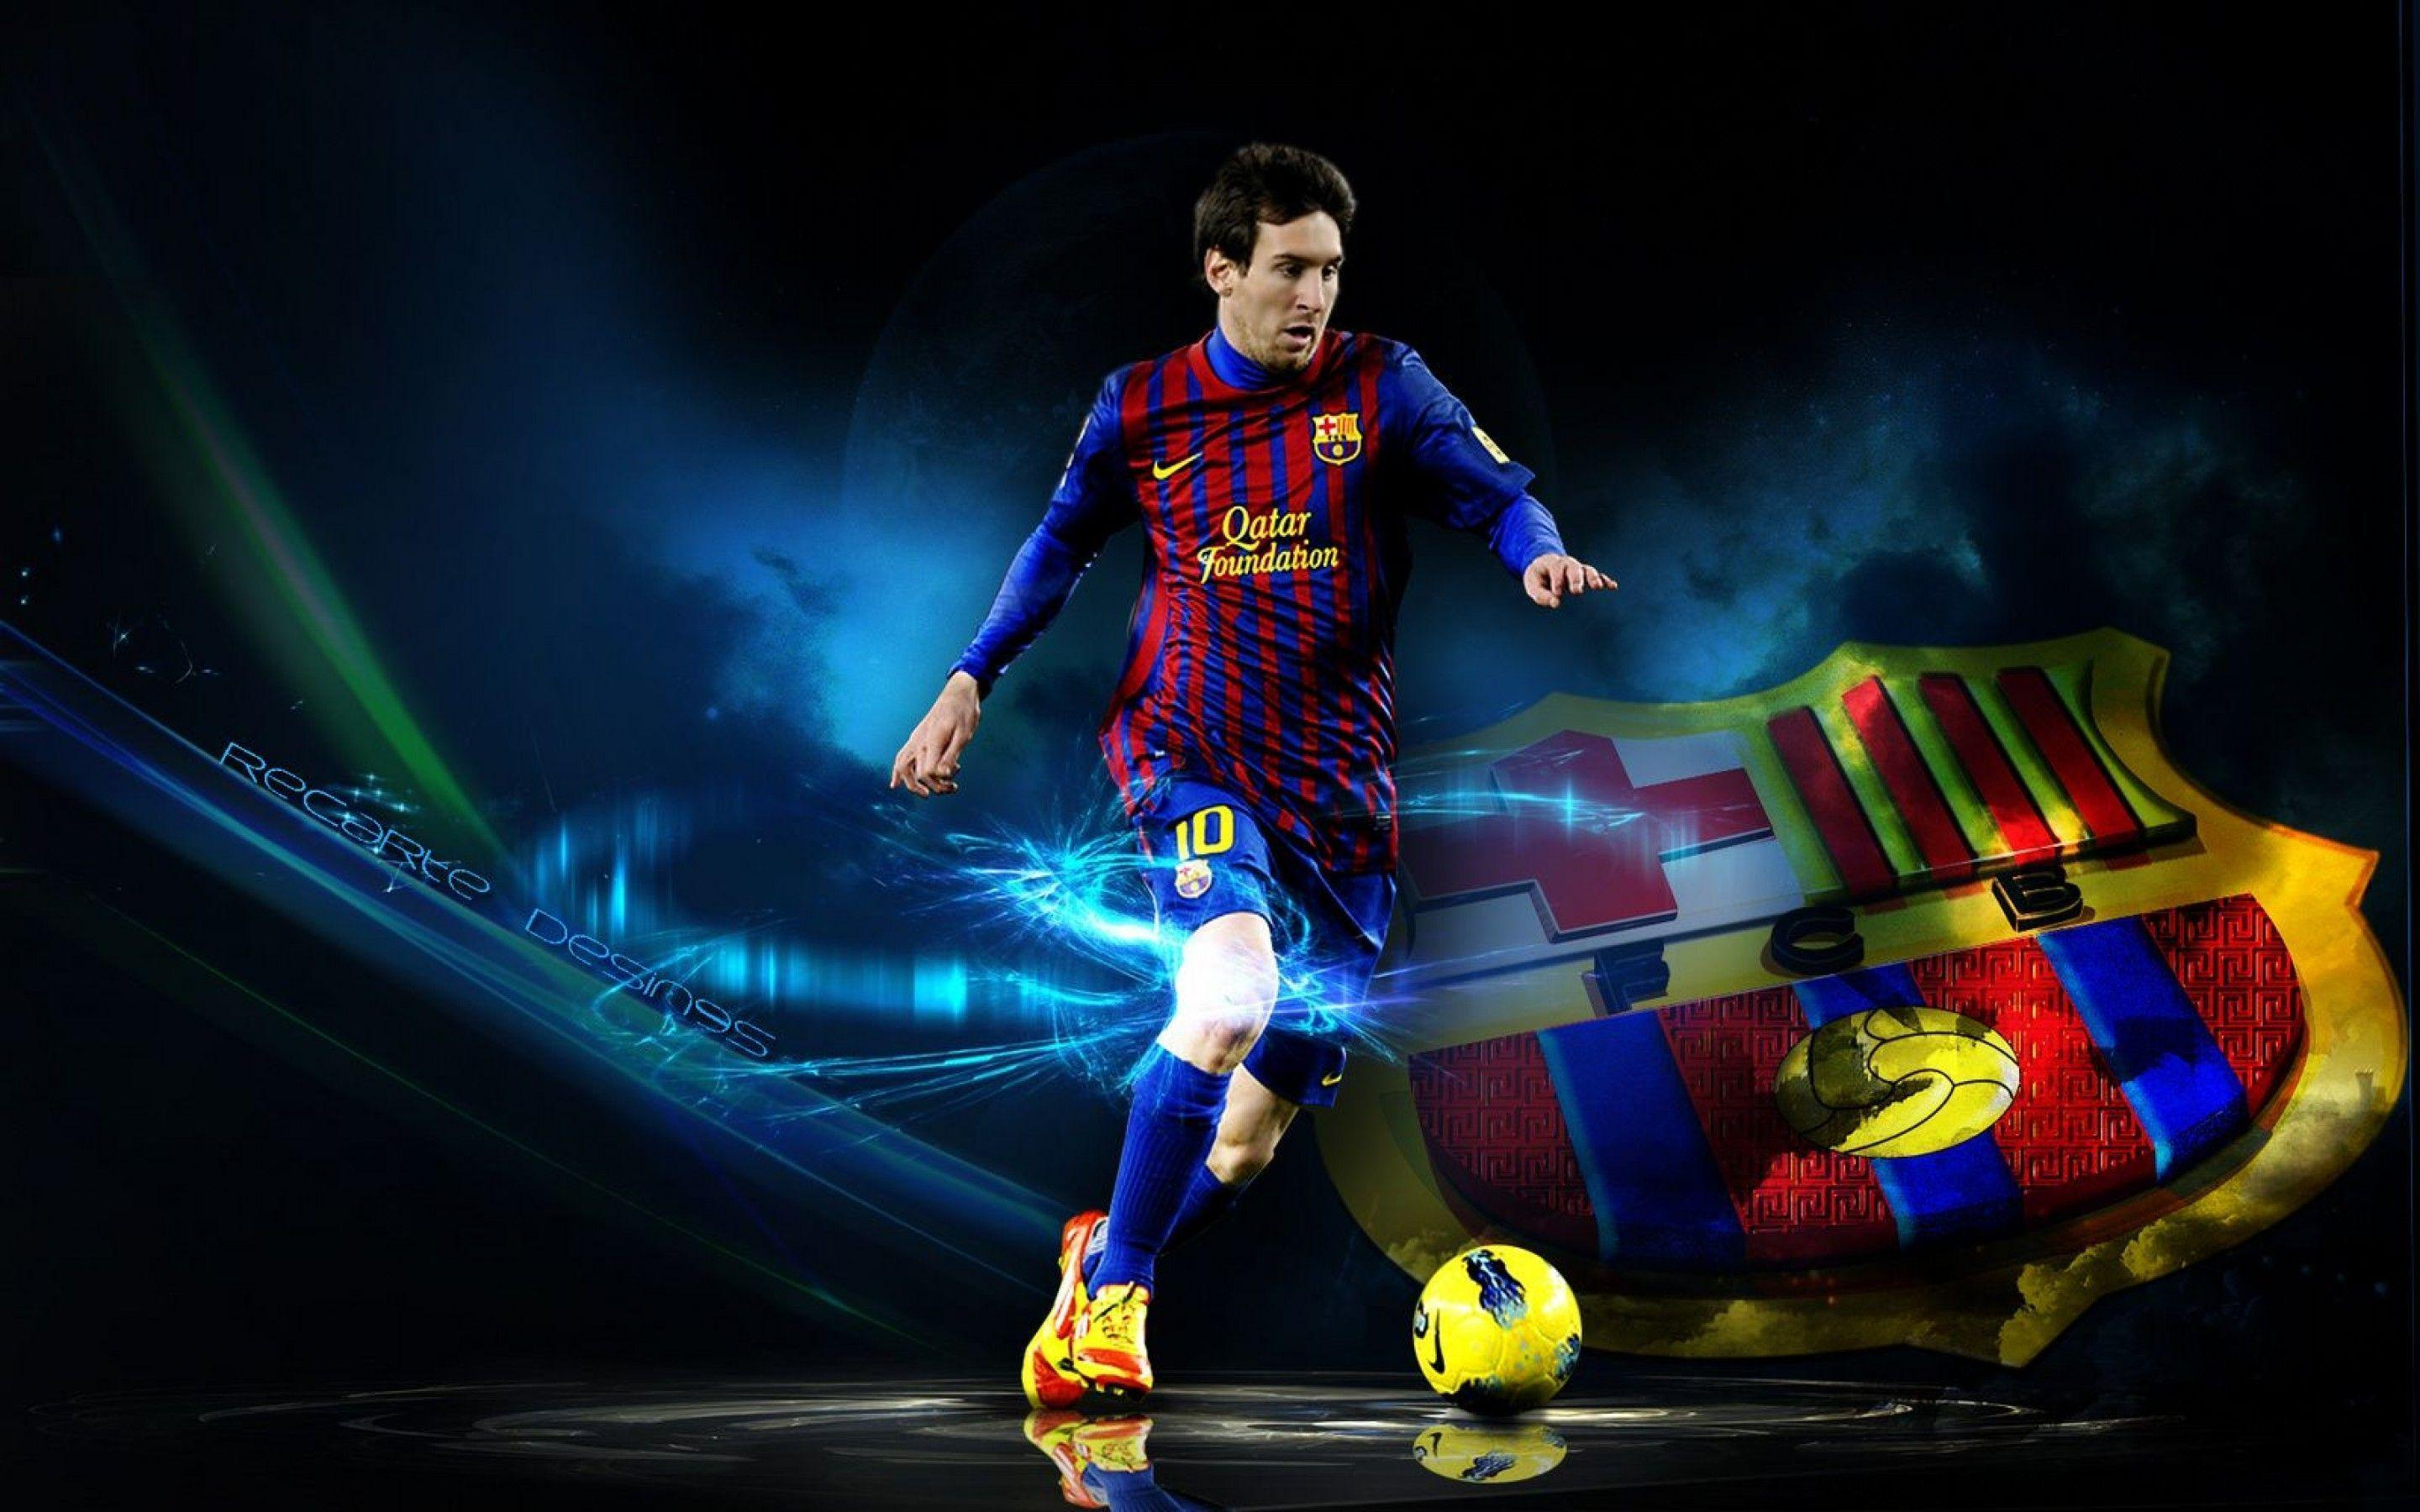 Messi Wallpapers - Celebrities Wallpapers (8210) ilikewalls.